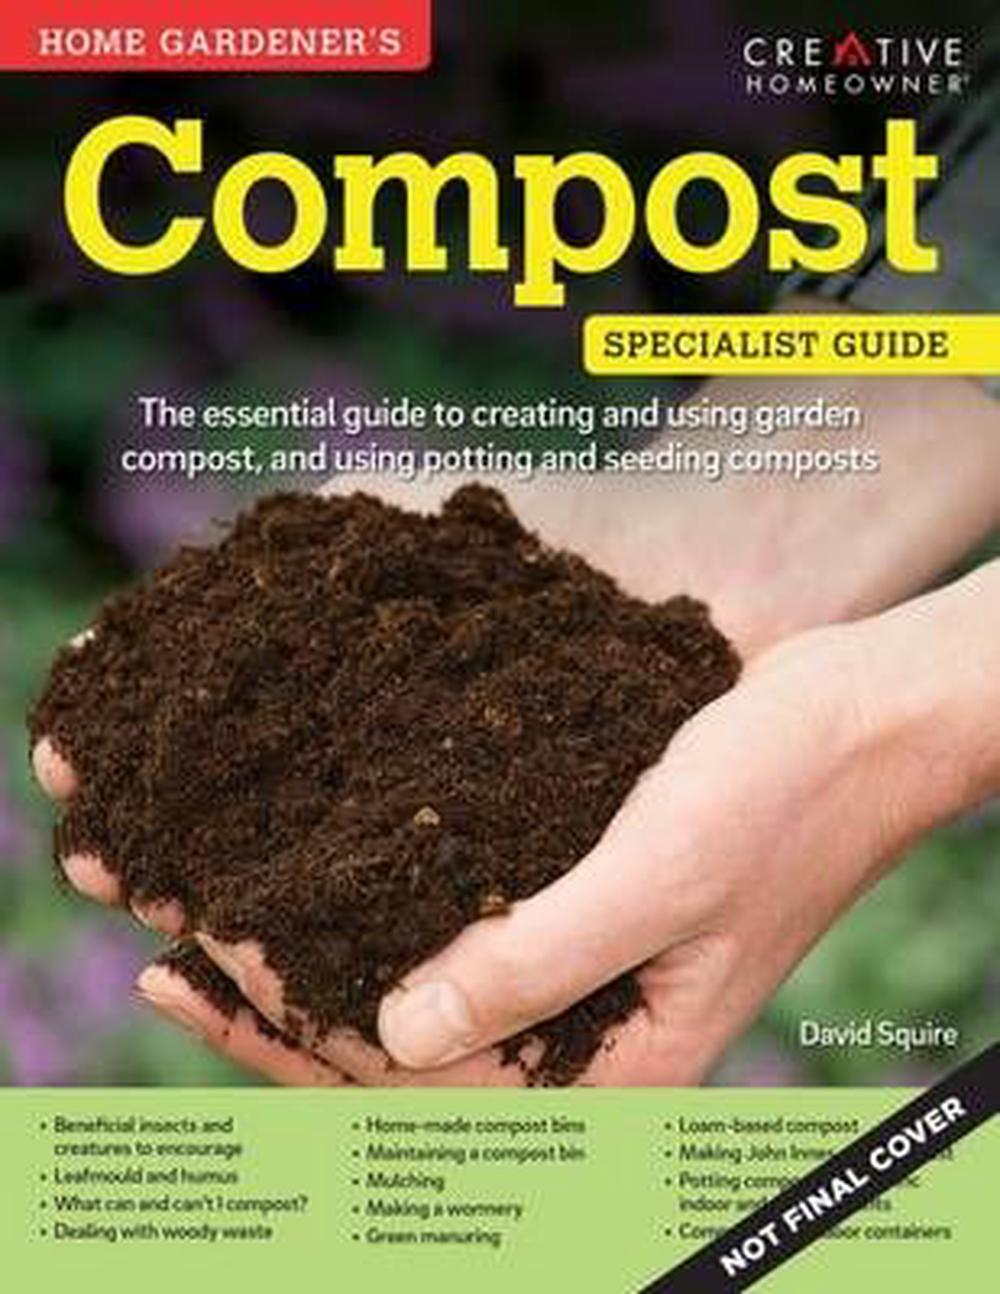 Home Gardener's Compost: Making and Using Garden, Potting, and Seeding Compost